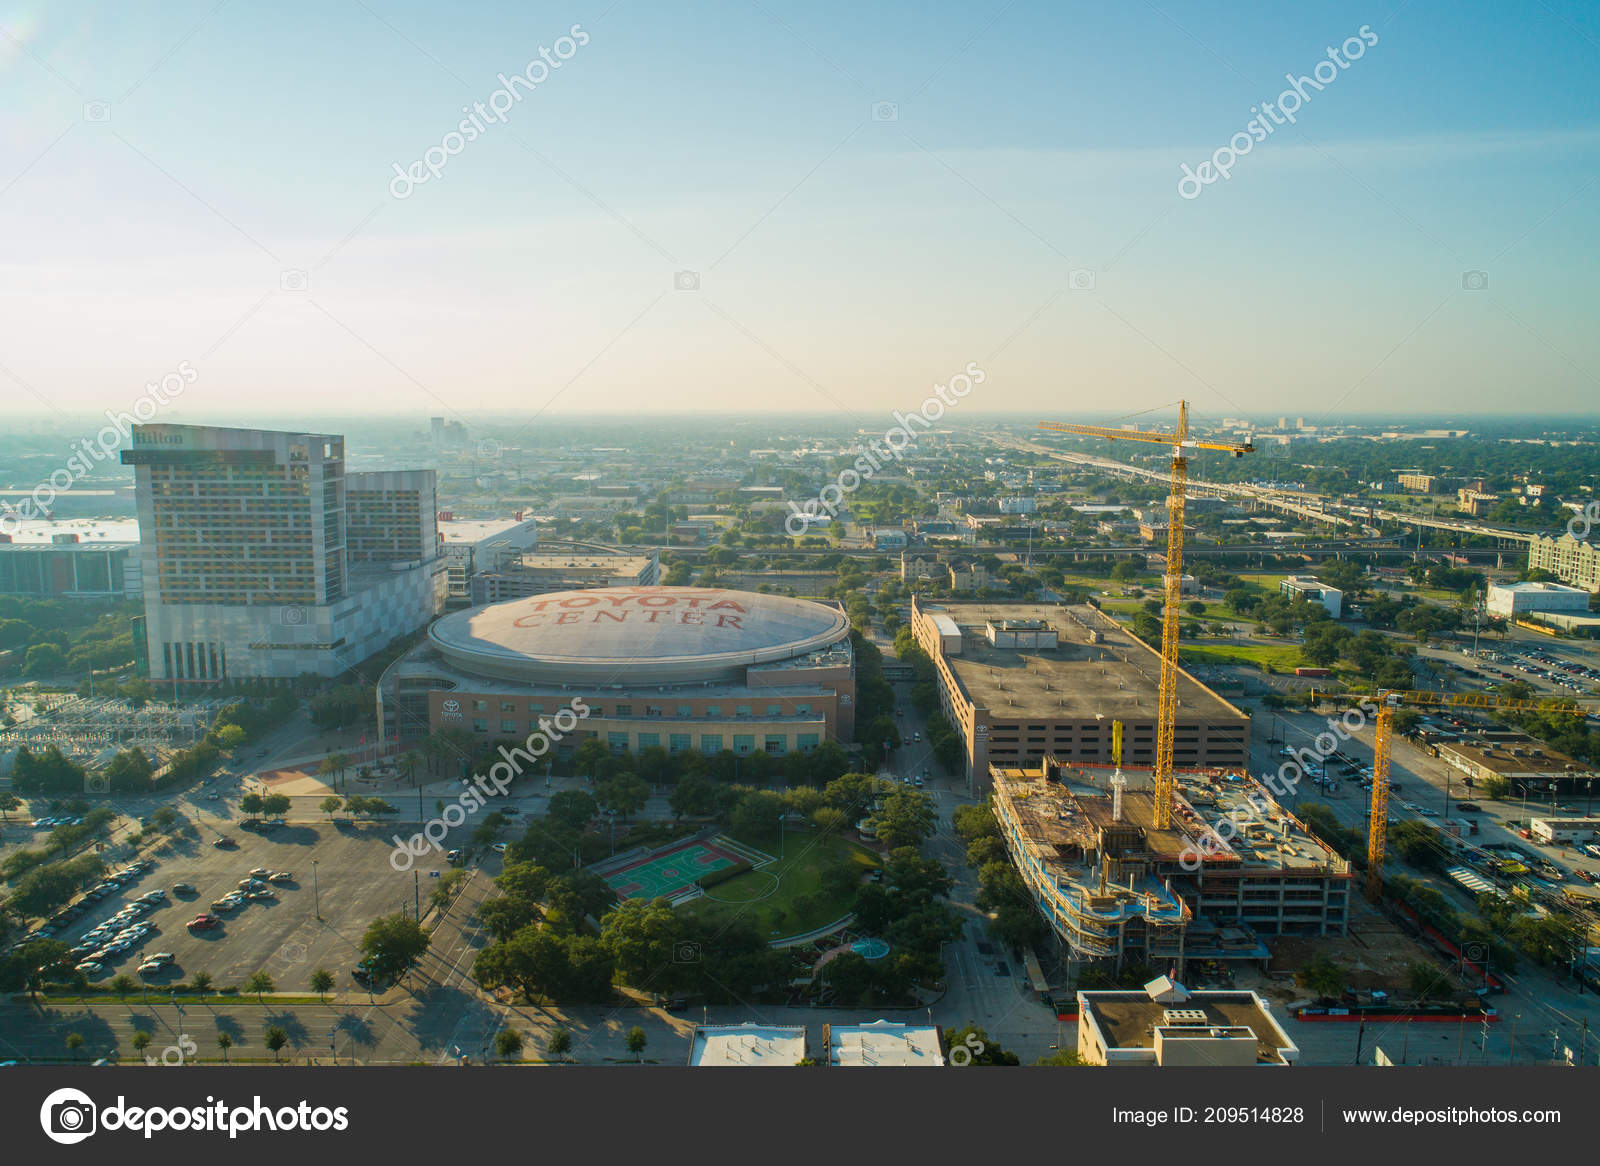 Aerial Drone Image Of The Toyota Center Houston Texas U2014 Photo By Felixtm